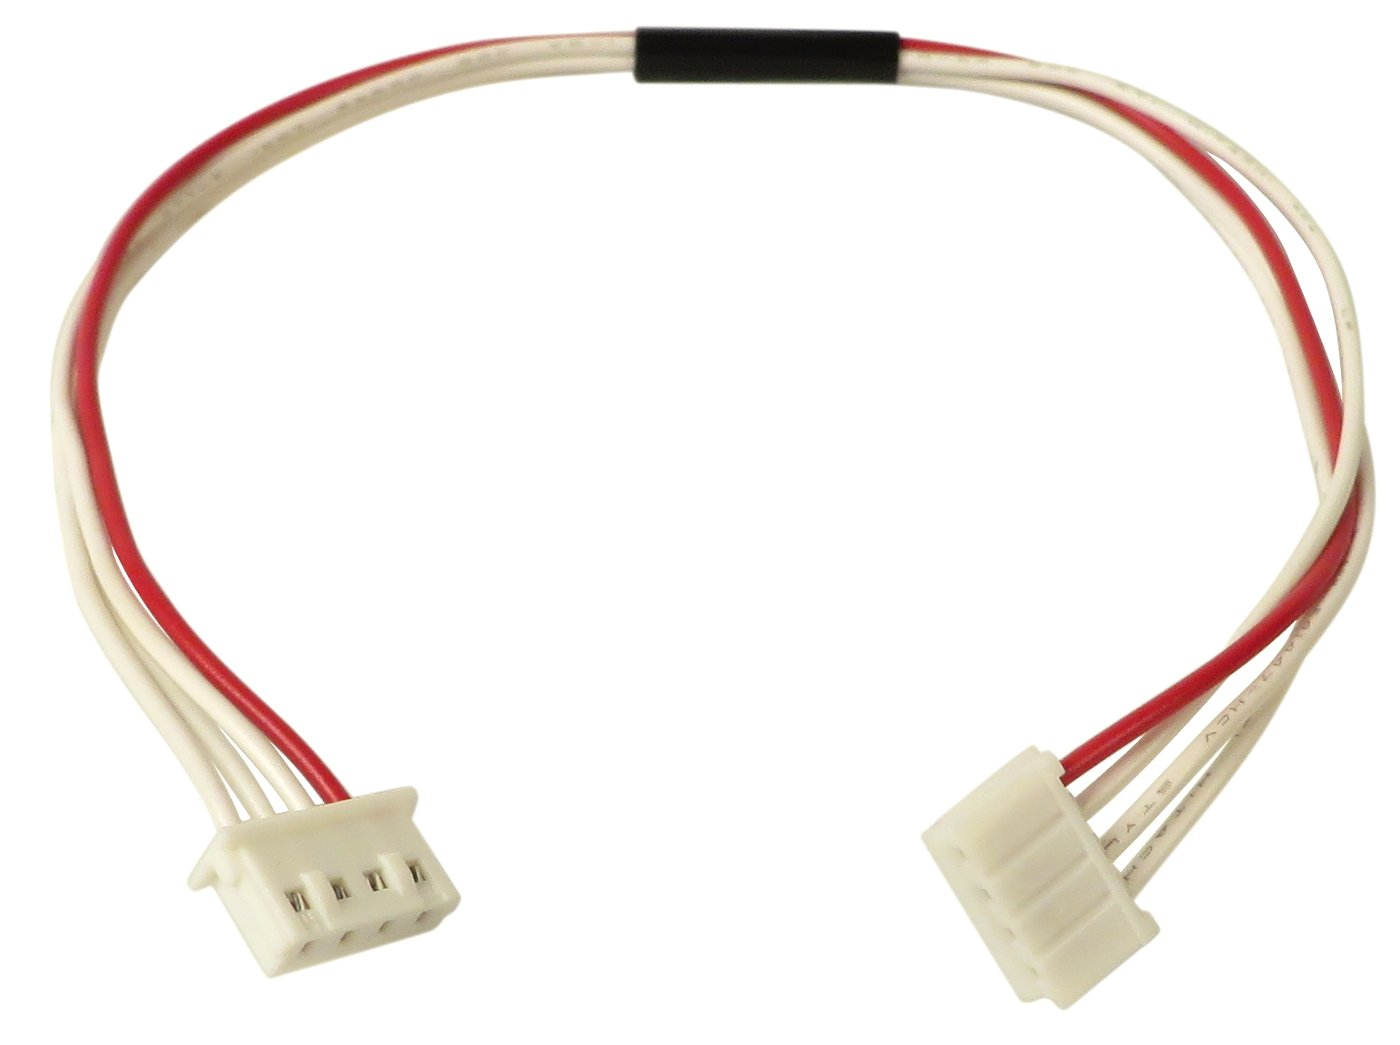 4 Pin Fader Cable For Pm5d By Yamaha Wz791600 Full Compass Systems Wiring